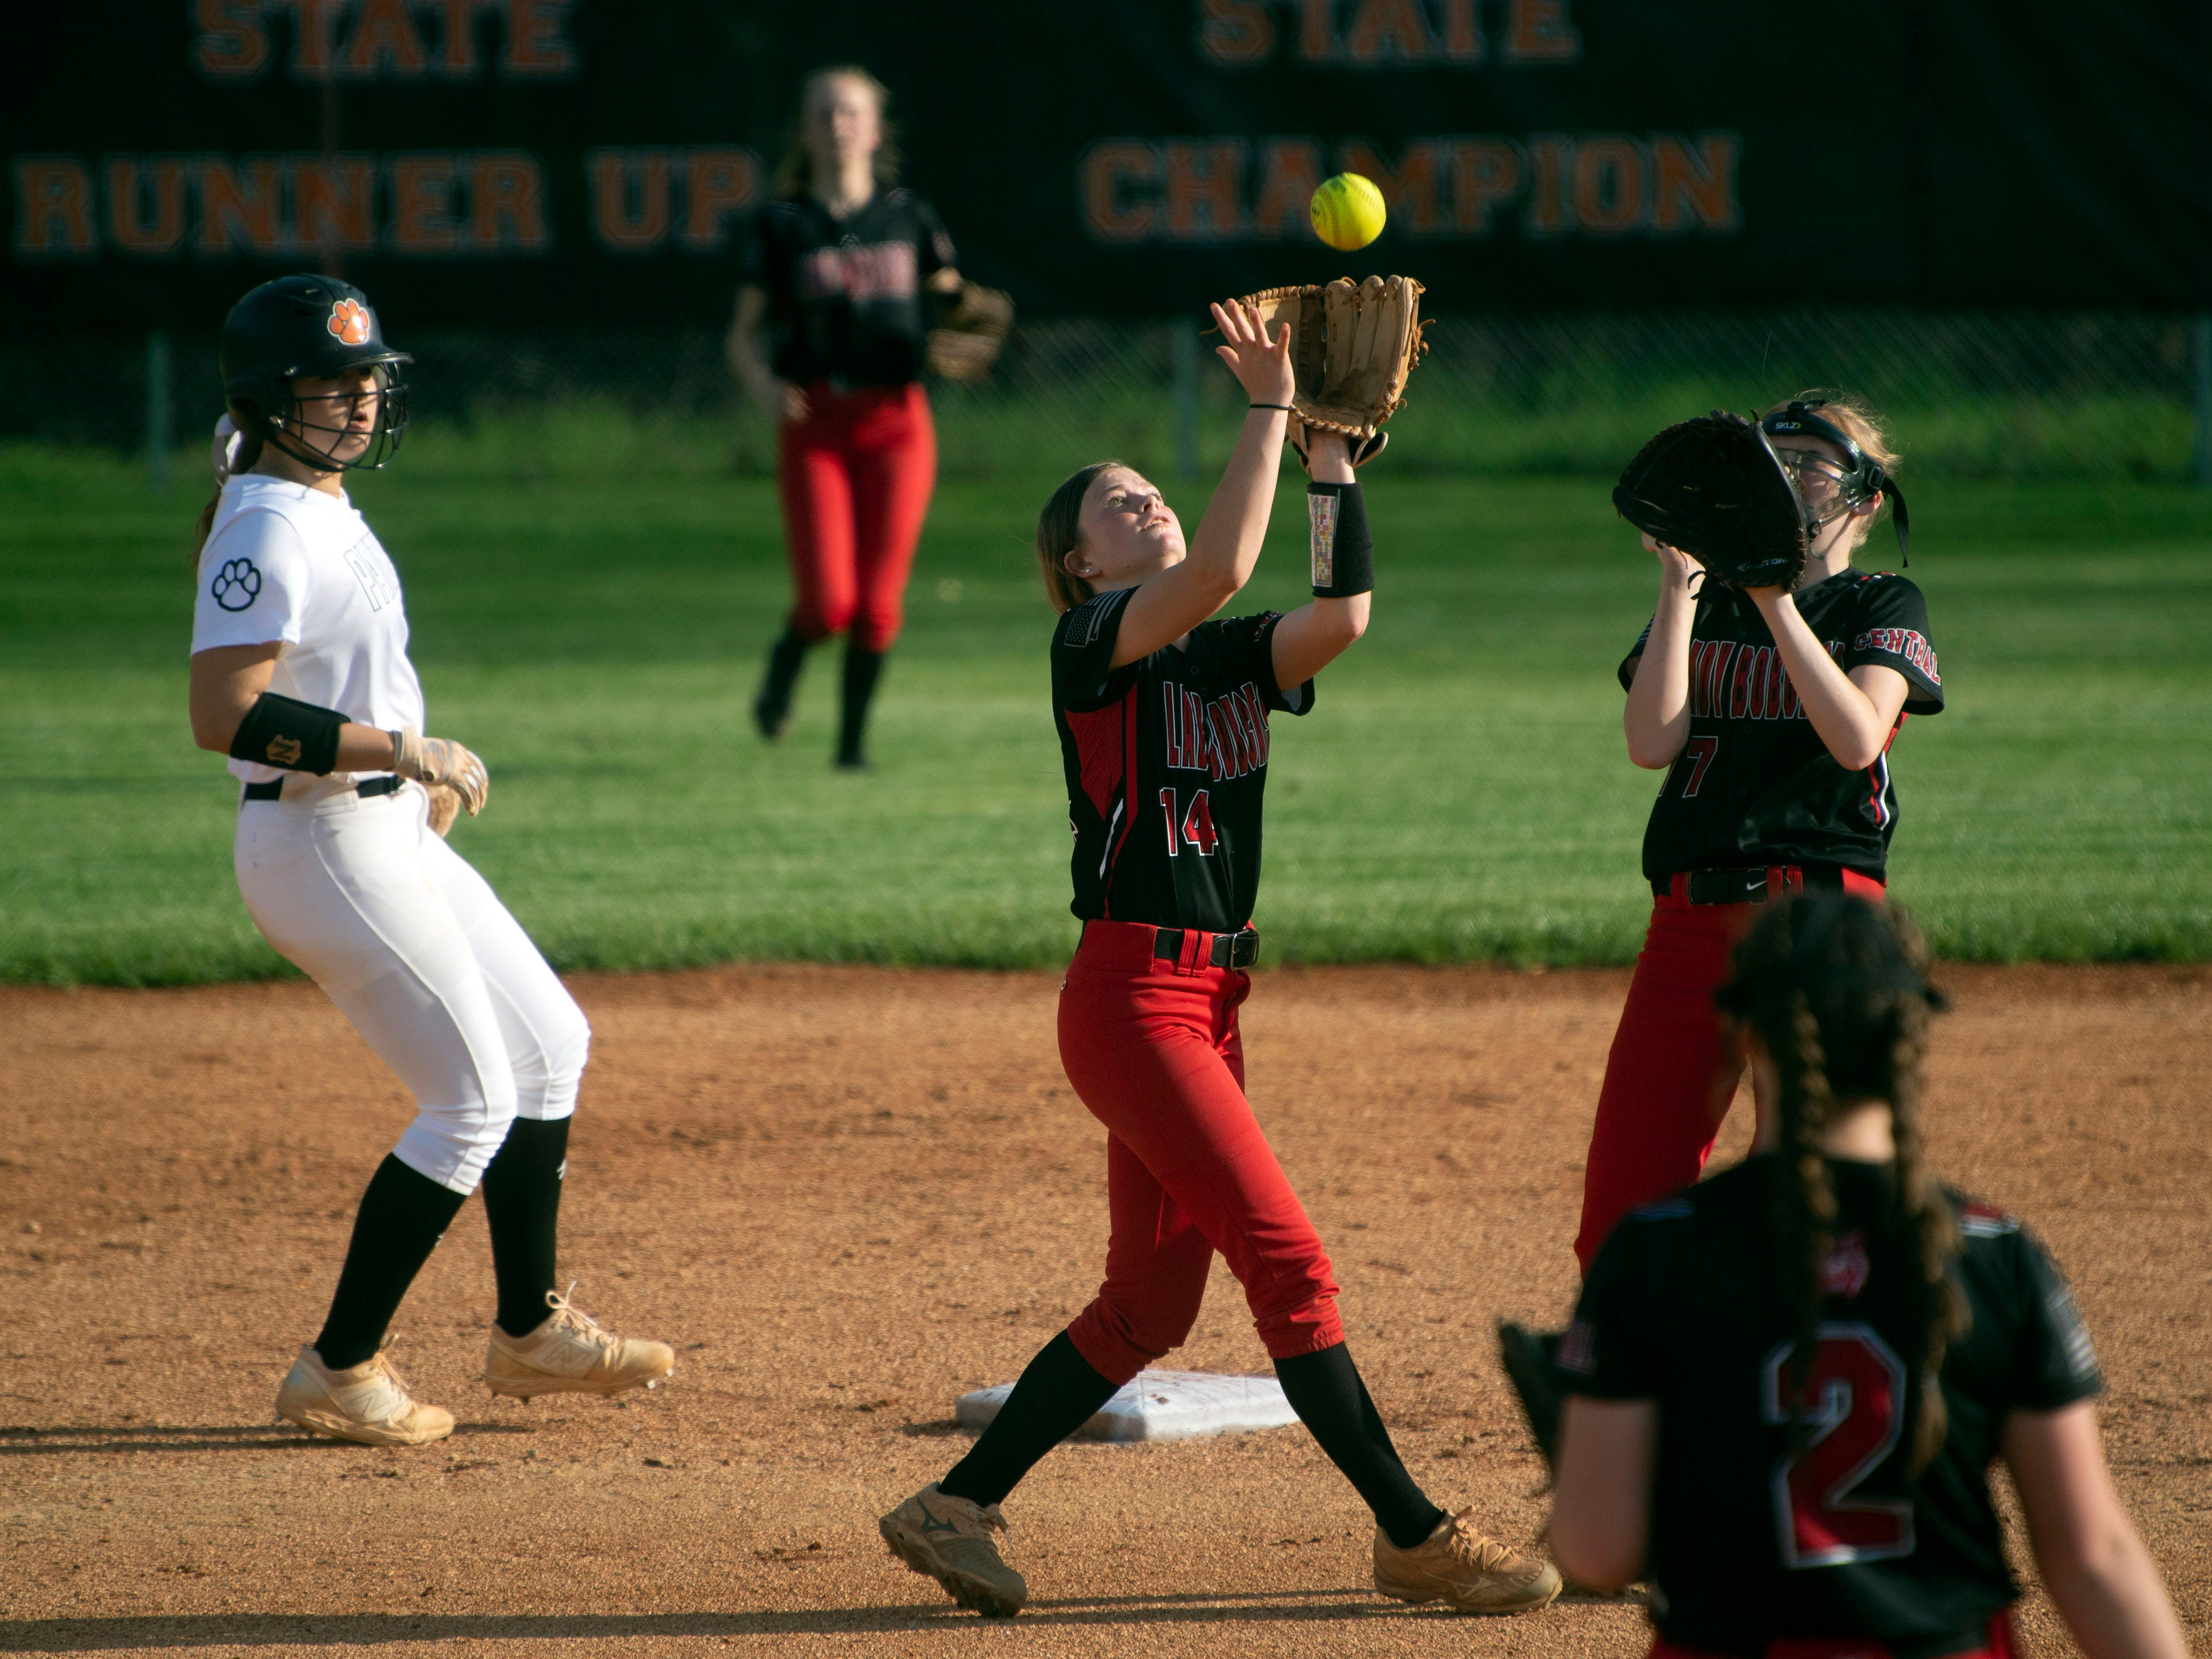 Central's Maycee Limbaugh (14) catches a fly ball in the game at Powell on Thursday, April 11, 2019.